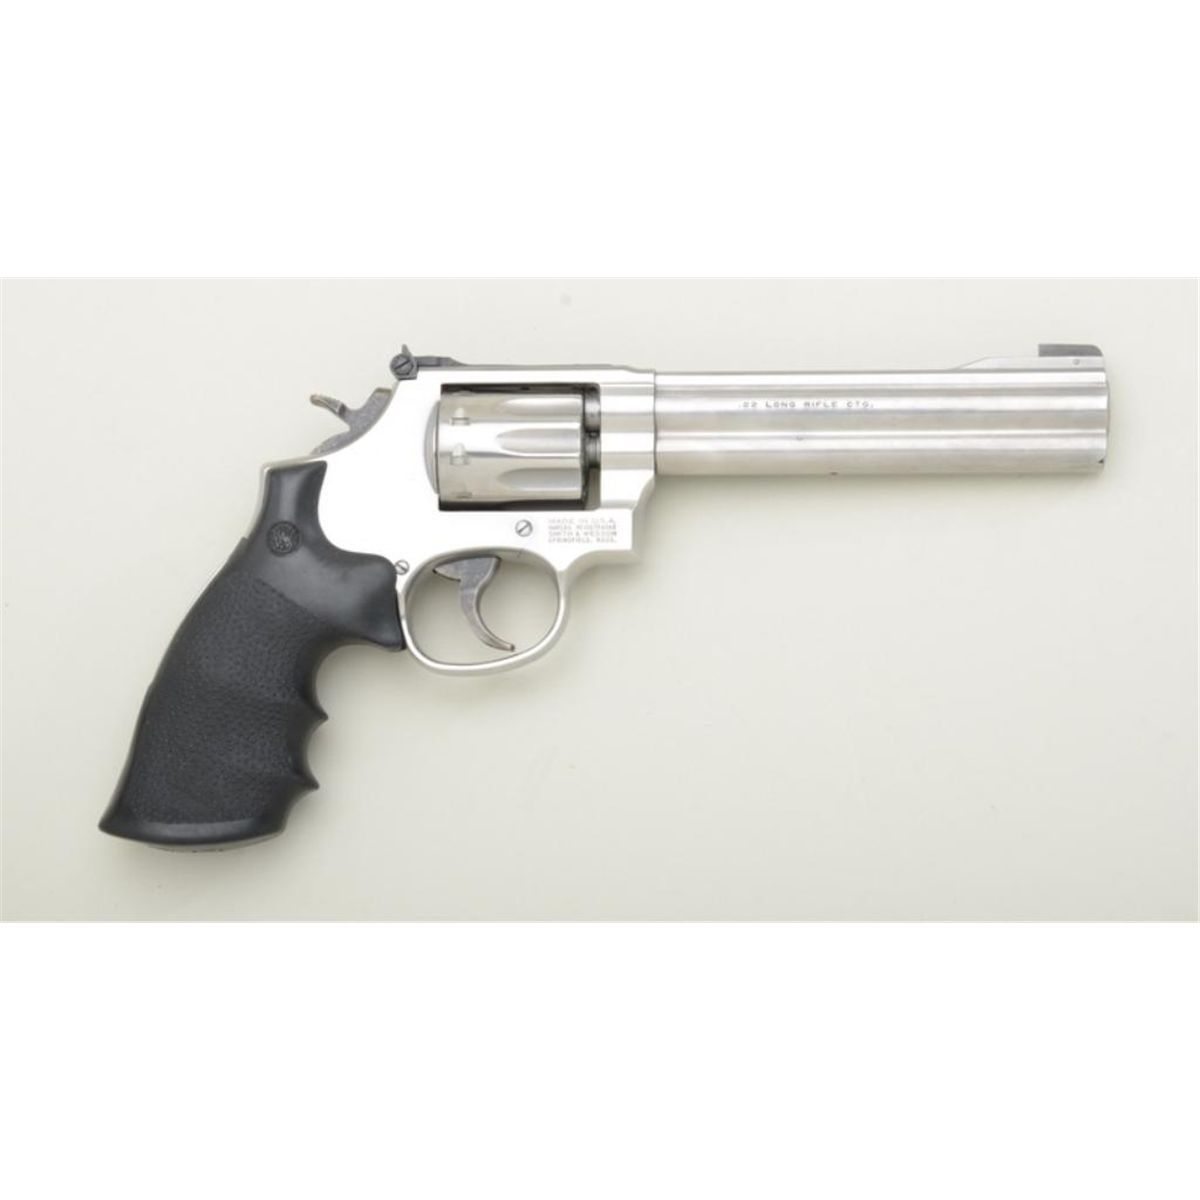 "Smith & Wesson Model 617-4 Plus DA 10-shot revolver, .22LR cal., 6"" barrel,  stainless steel, check"